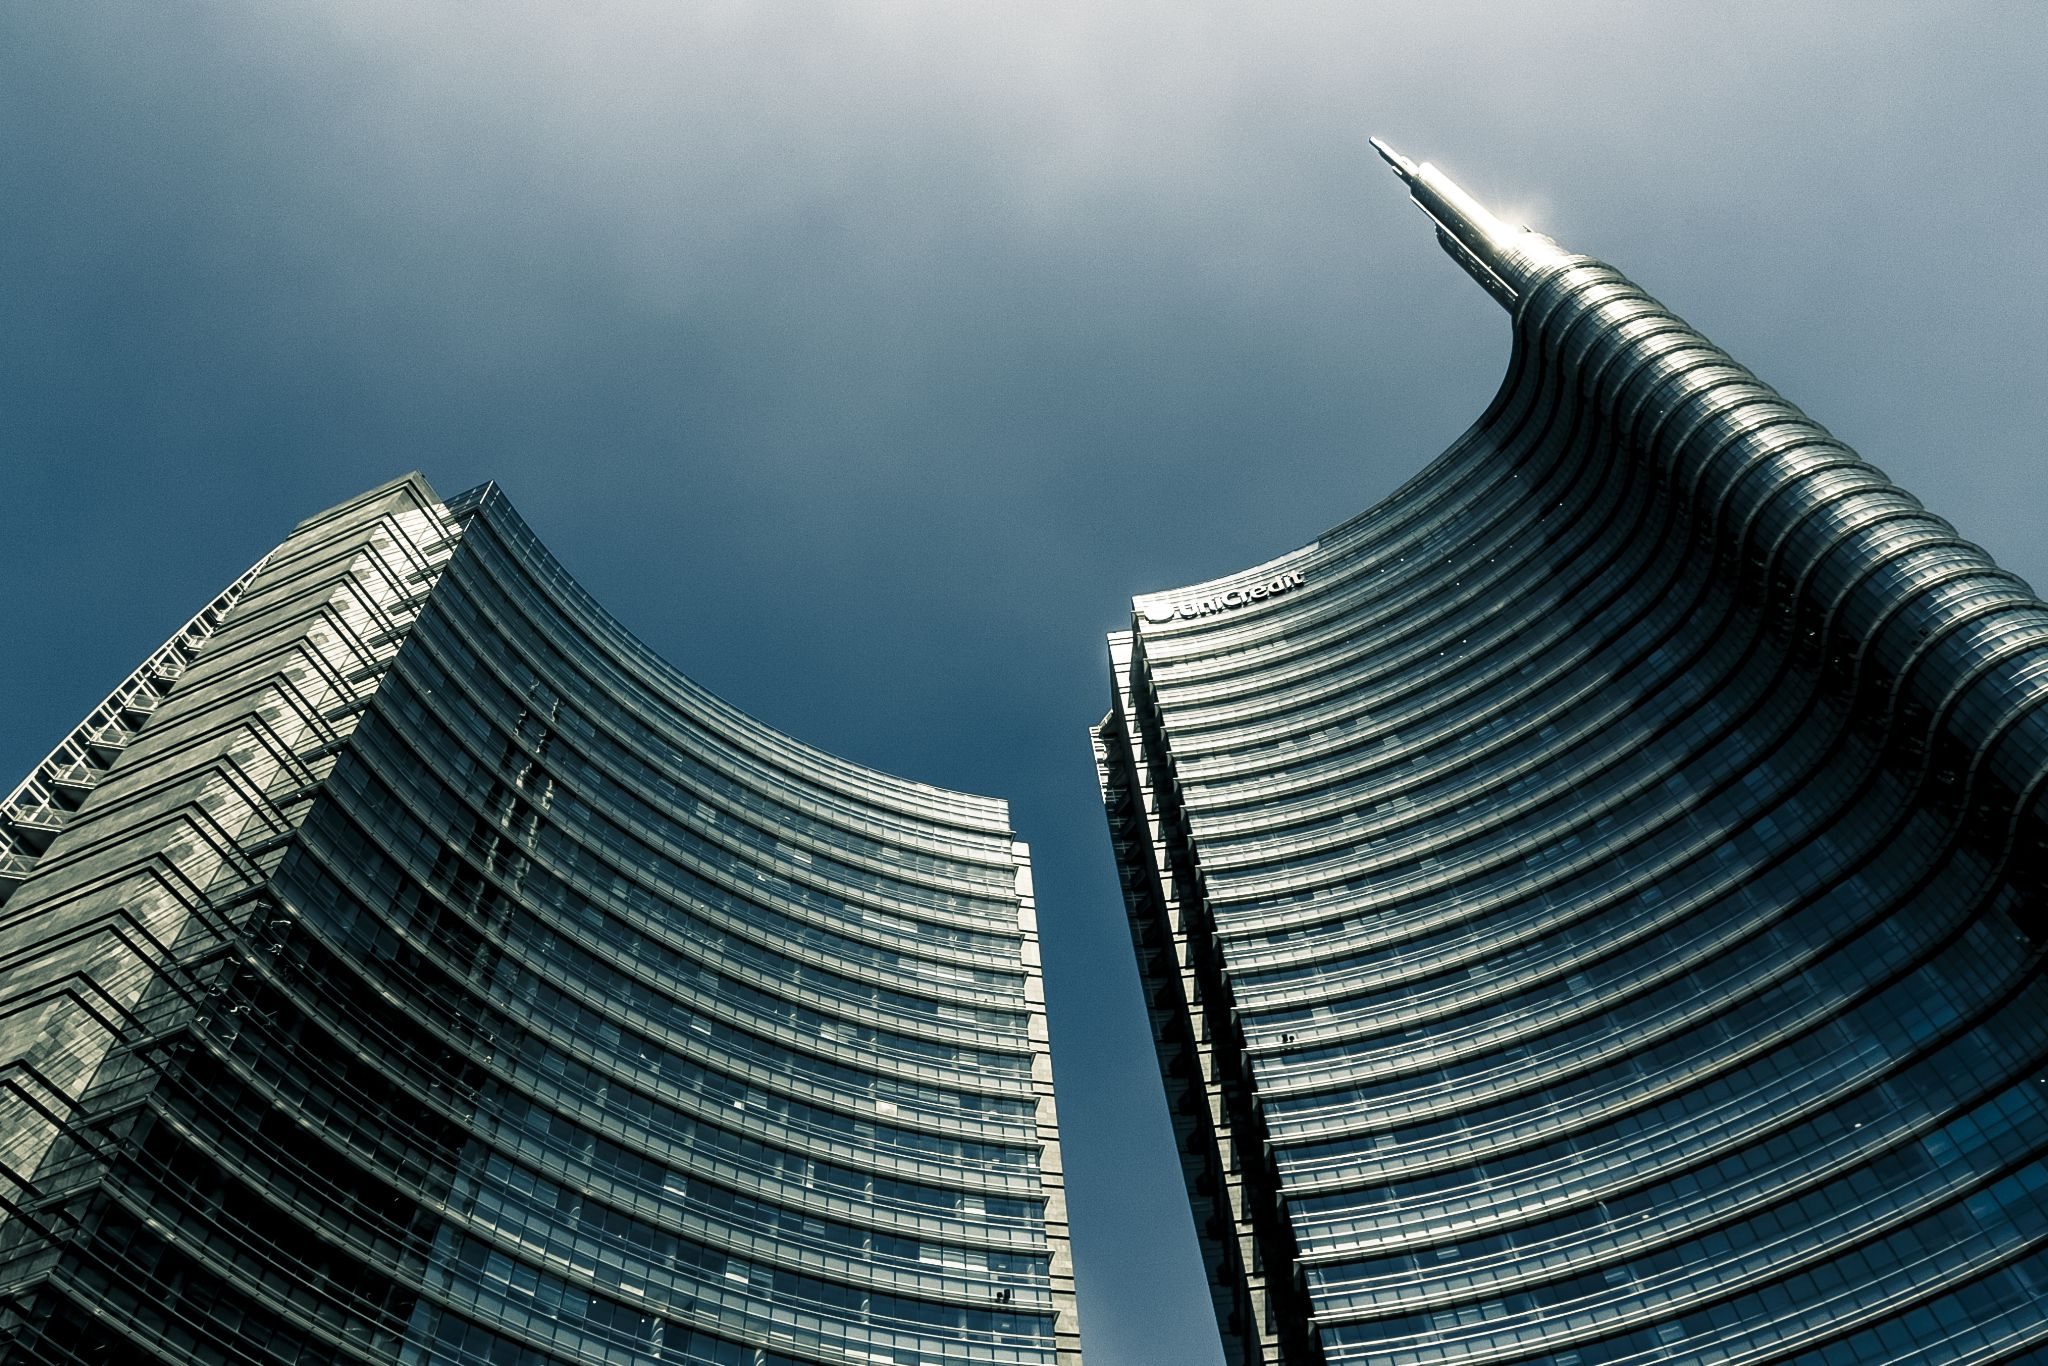 UniCredit Building by claudioturrin77